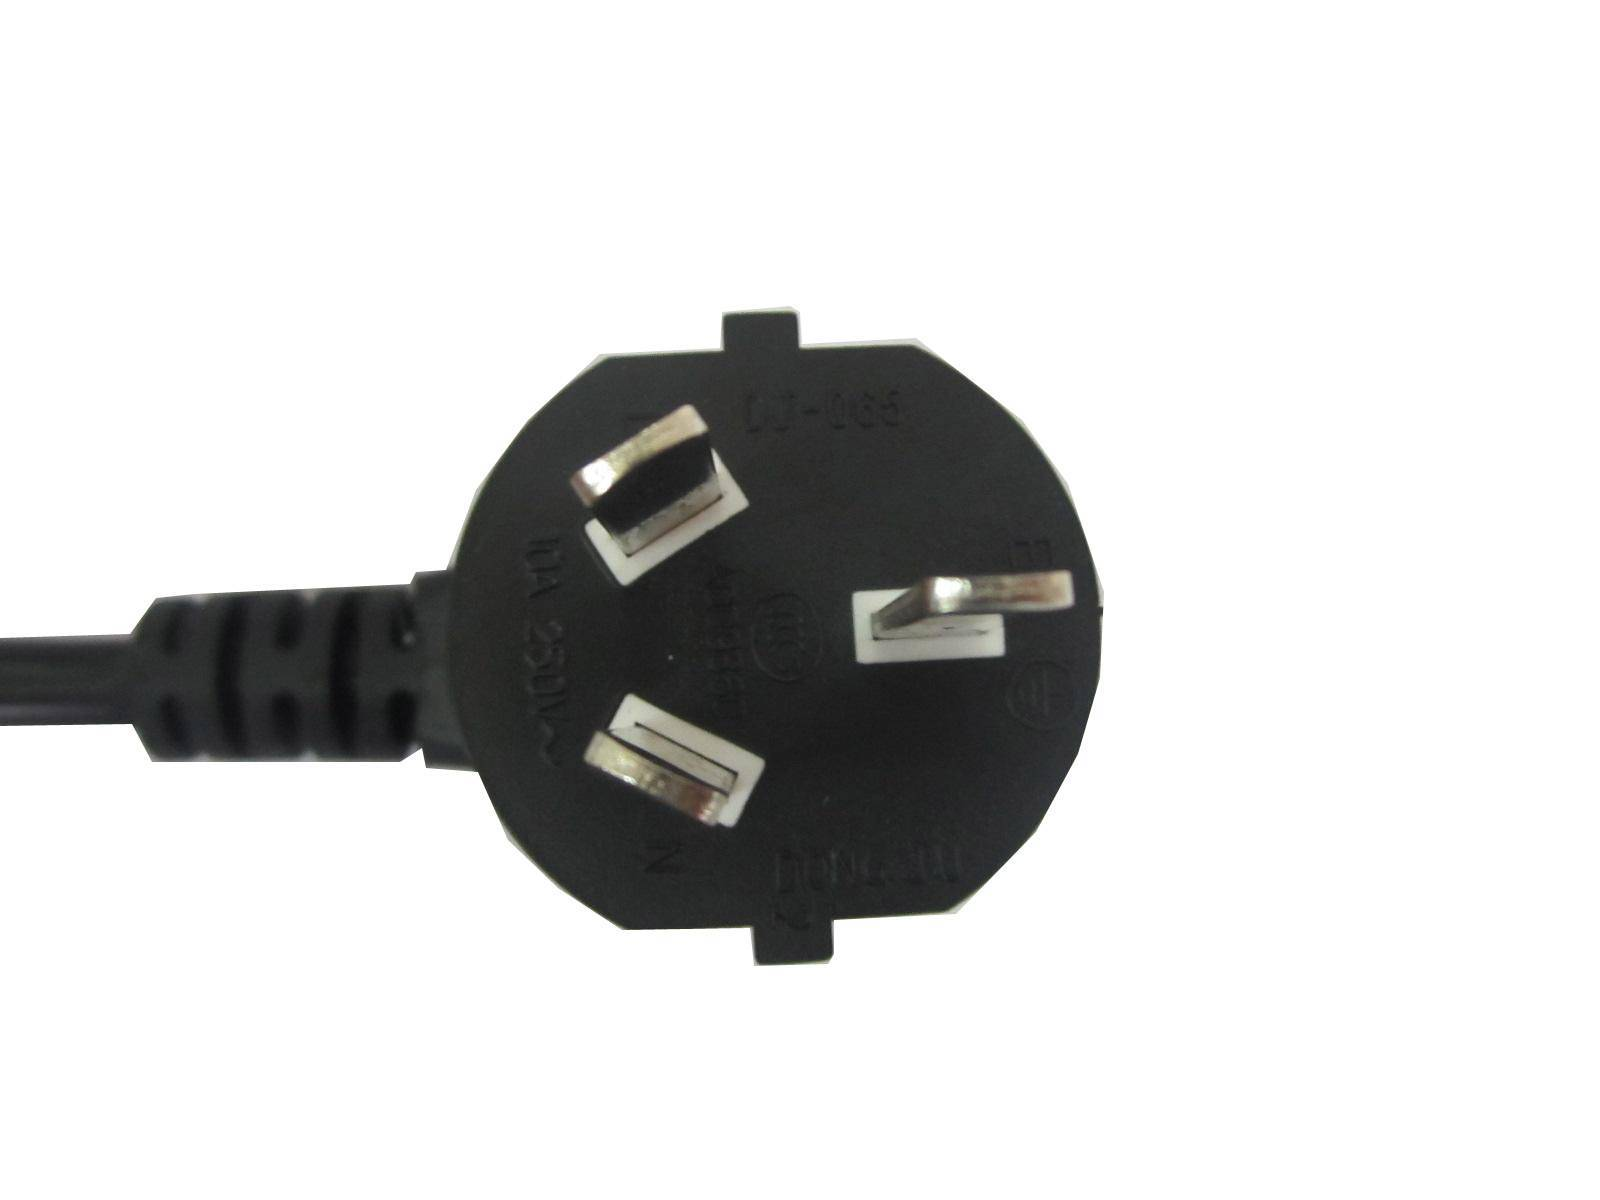 Sell Chinese CCC Power Supply Cords